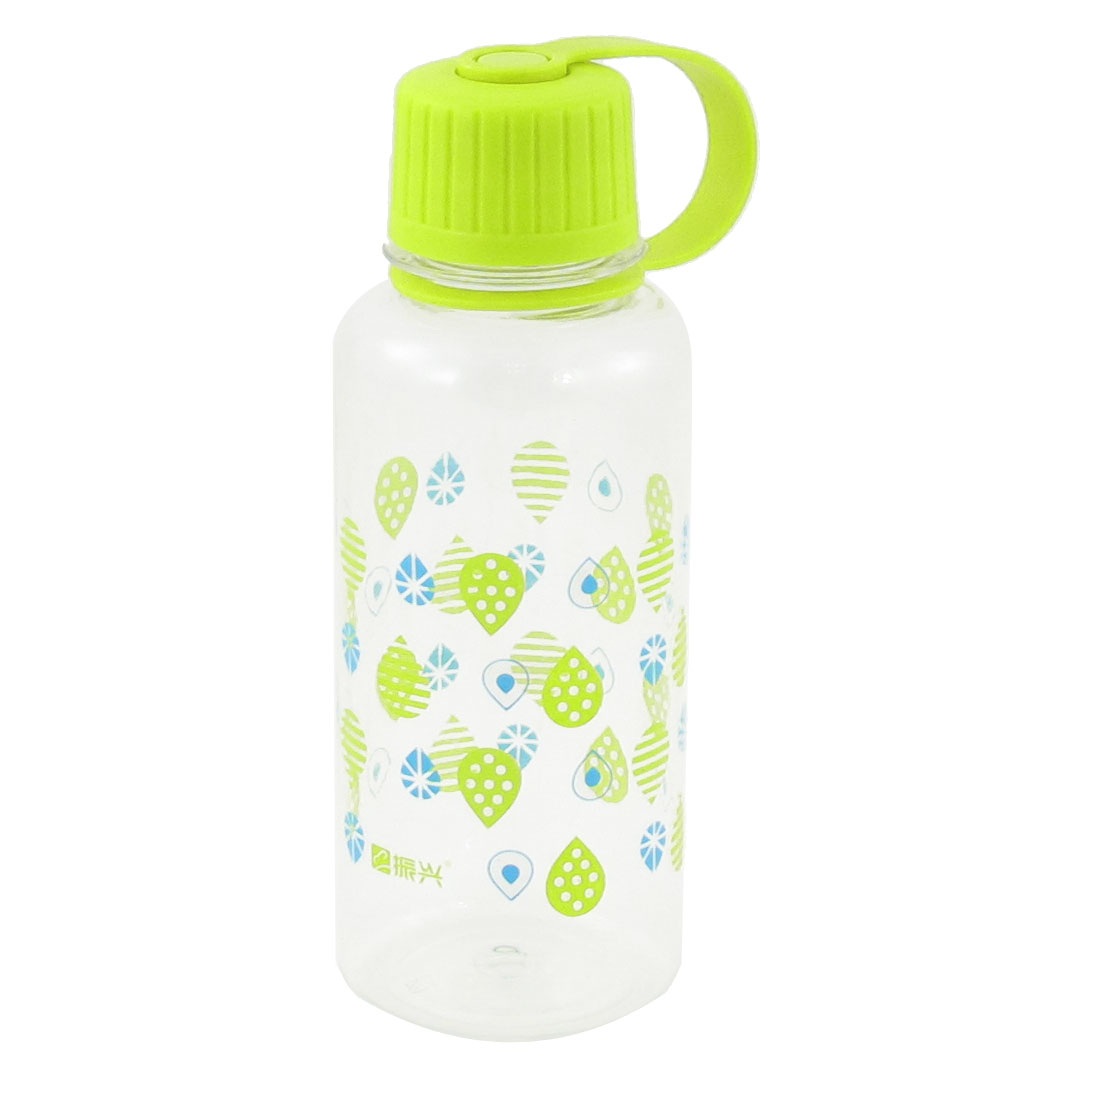 400ml Capacity Pale Green Clear Hard Plastic Water Bottle for Hiking Camping